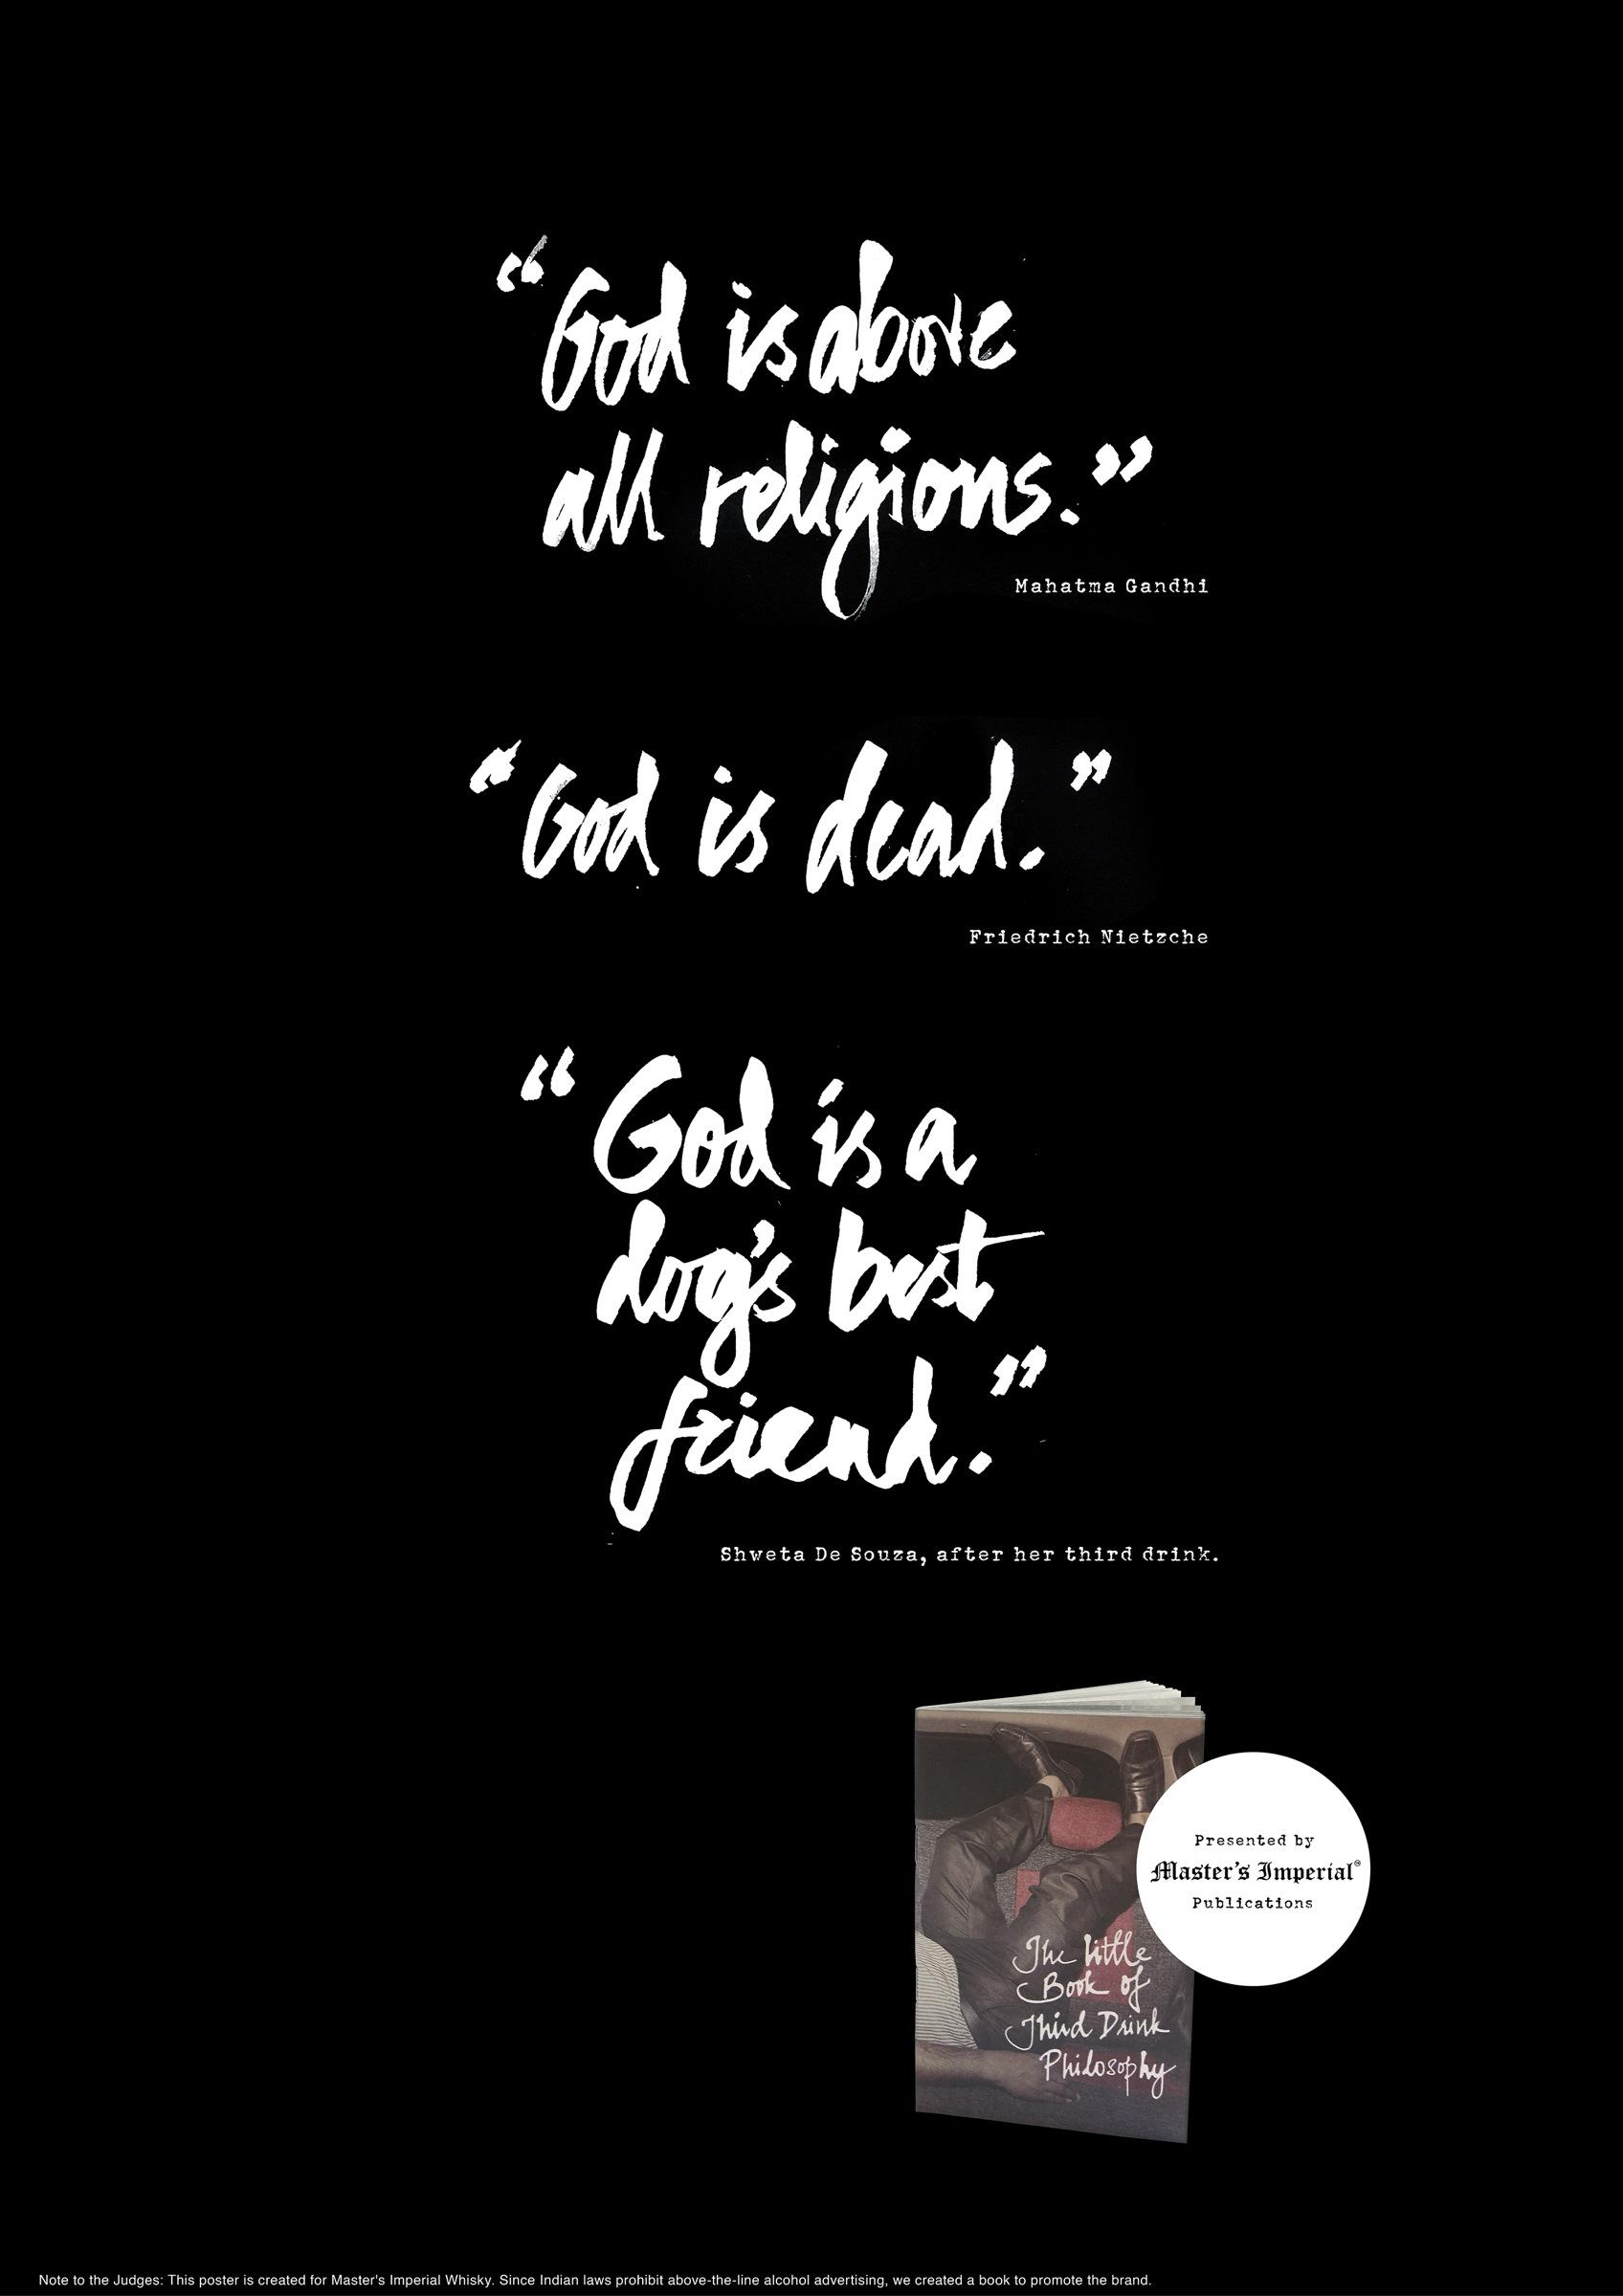 Master's Imperial Whisky Outdoor Ad -  Third Drink Philosophy - God